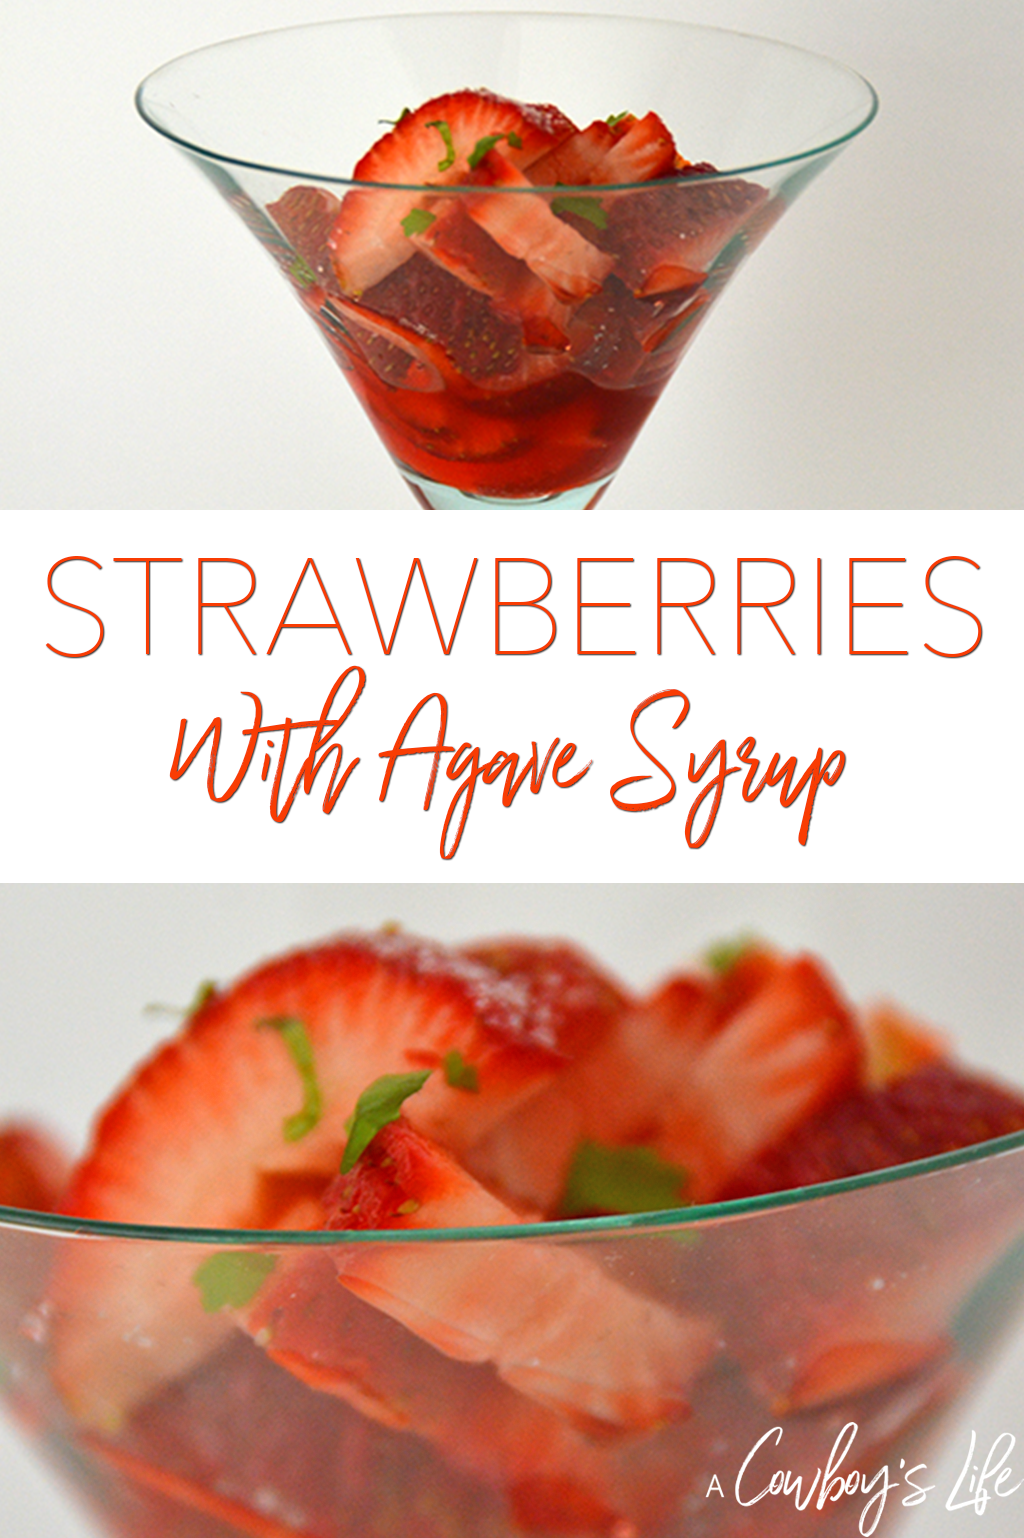 Strawberries with agave syrup